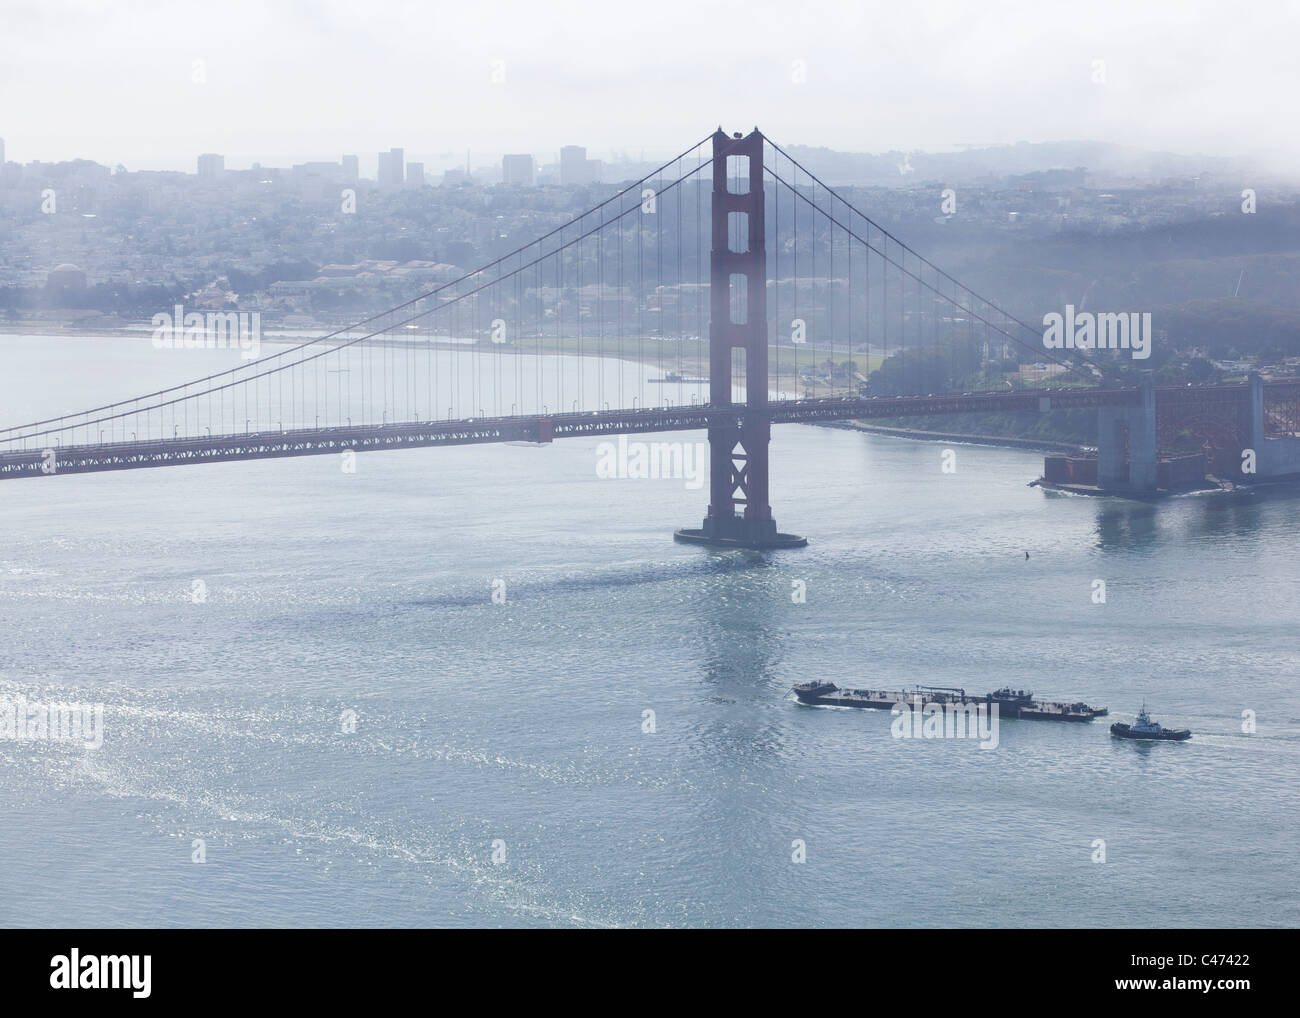 A freight barge makes way into the San Francisco bay under foggy sky - Stock Image